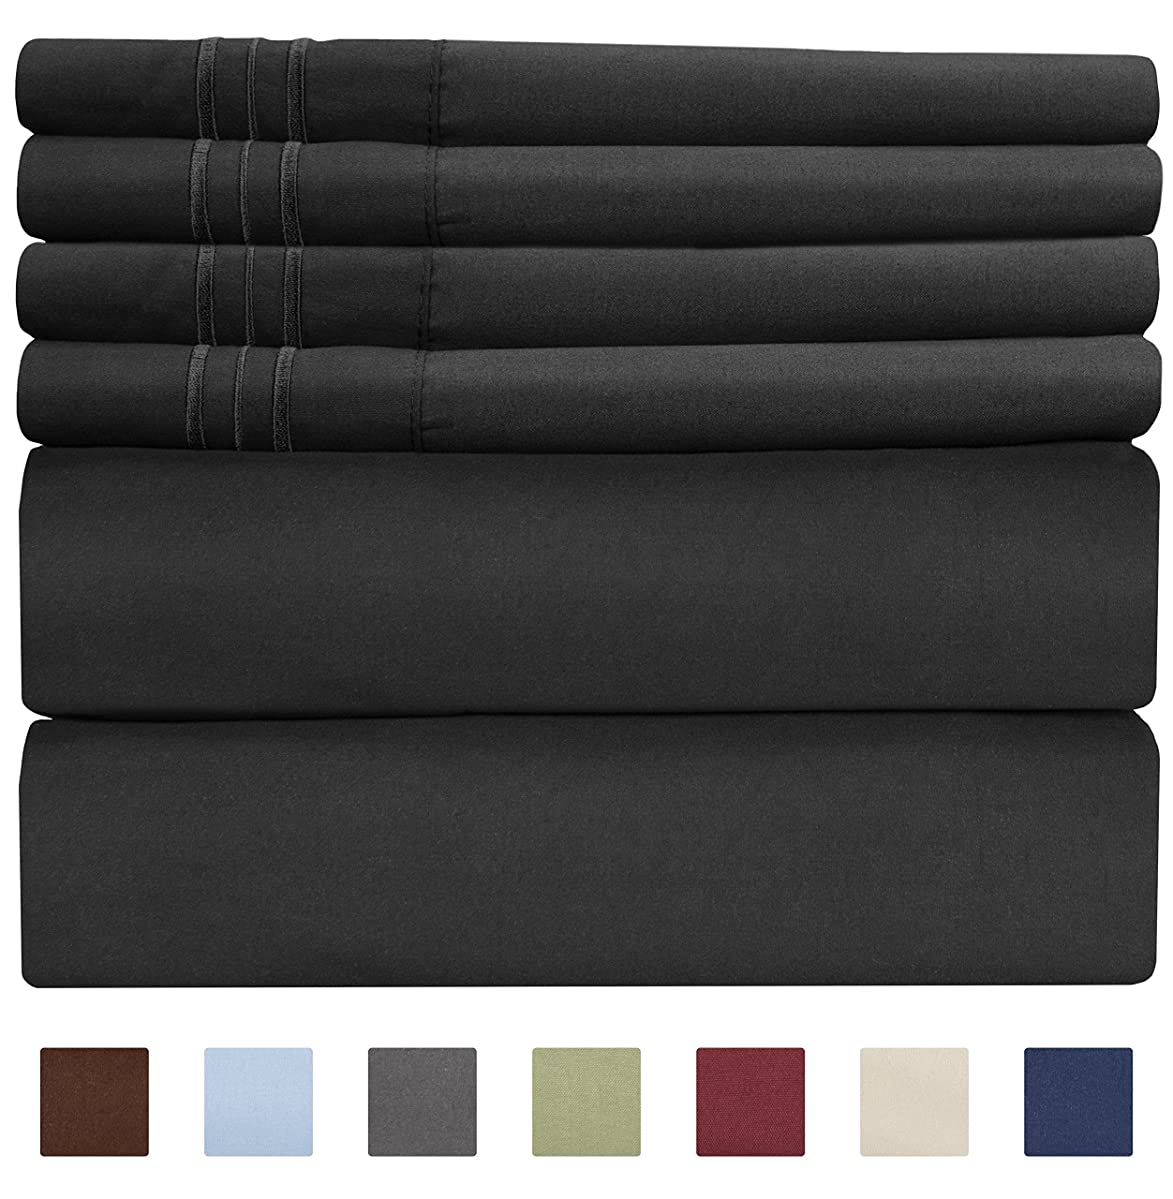 King Size Sheet Set - 6 Piece Set - Hotel Luxury Bed Sheets - Extra Soft - Deep Pockets - Easy Fit - Breathable & Cooling Sheets - Wrinkle Free - Comfy - Black Bed Sheets - Kings Sheets - 6 PC